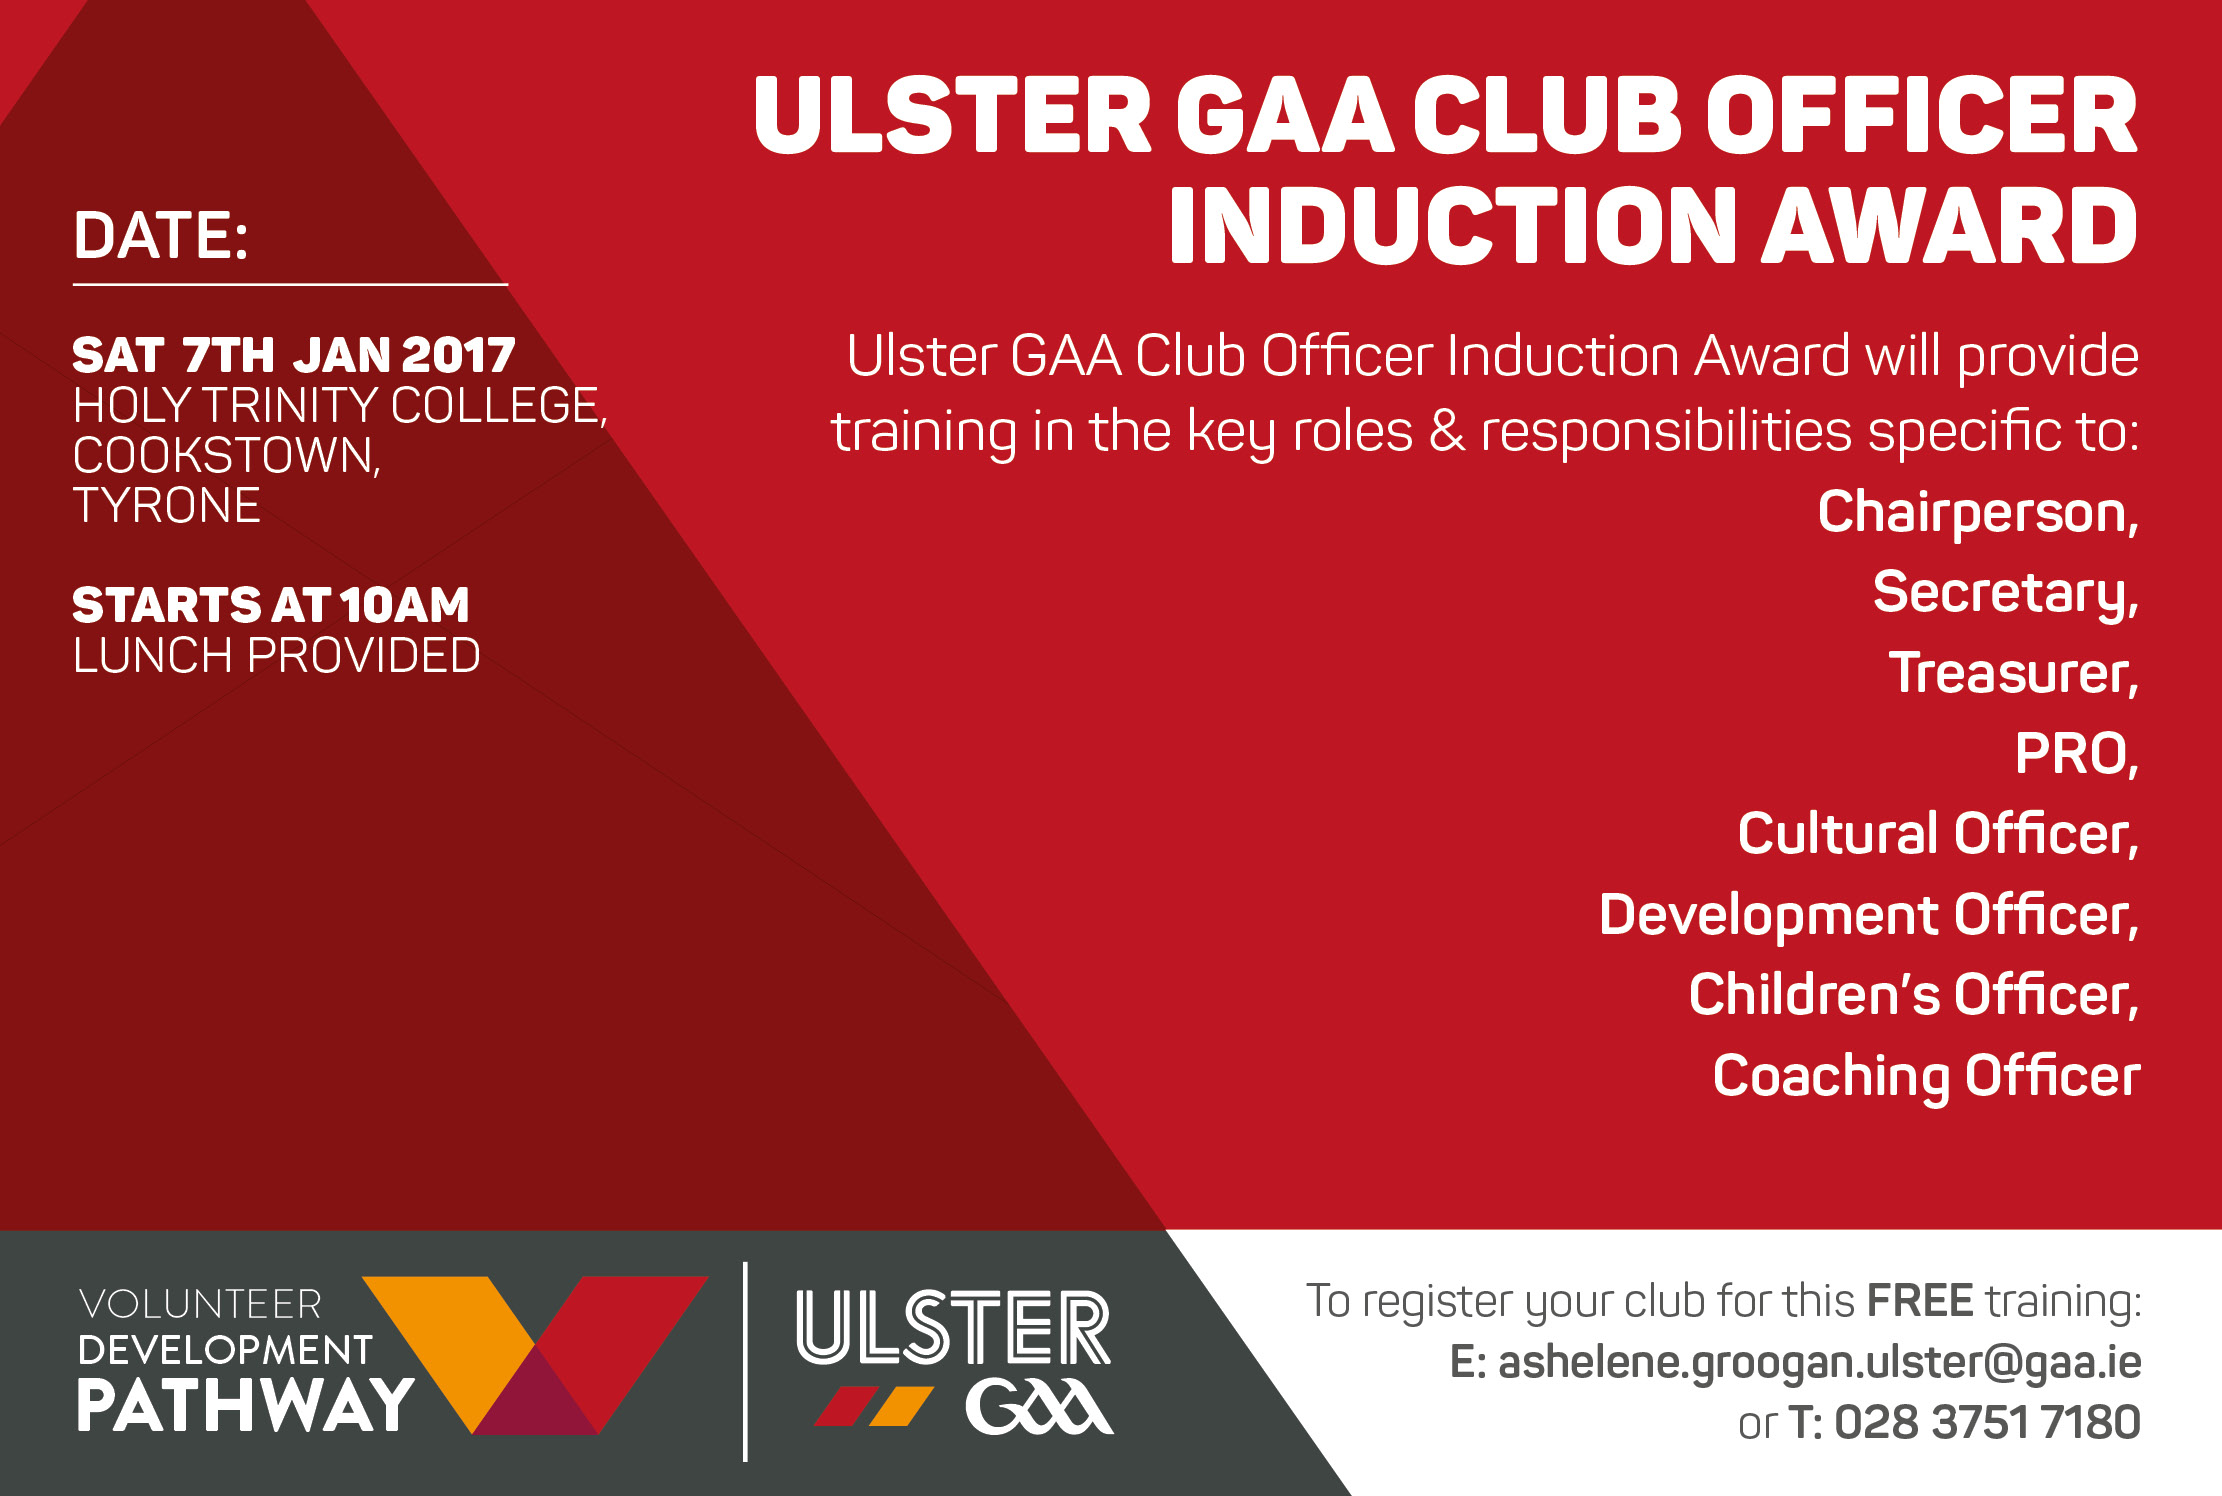 Ulster GAA Club Officer Induction Award